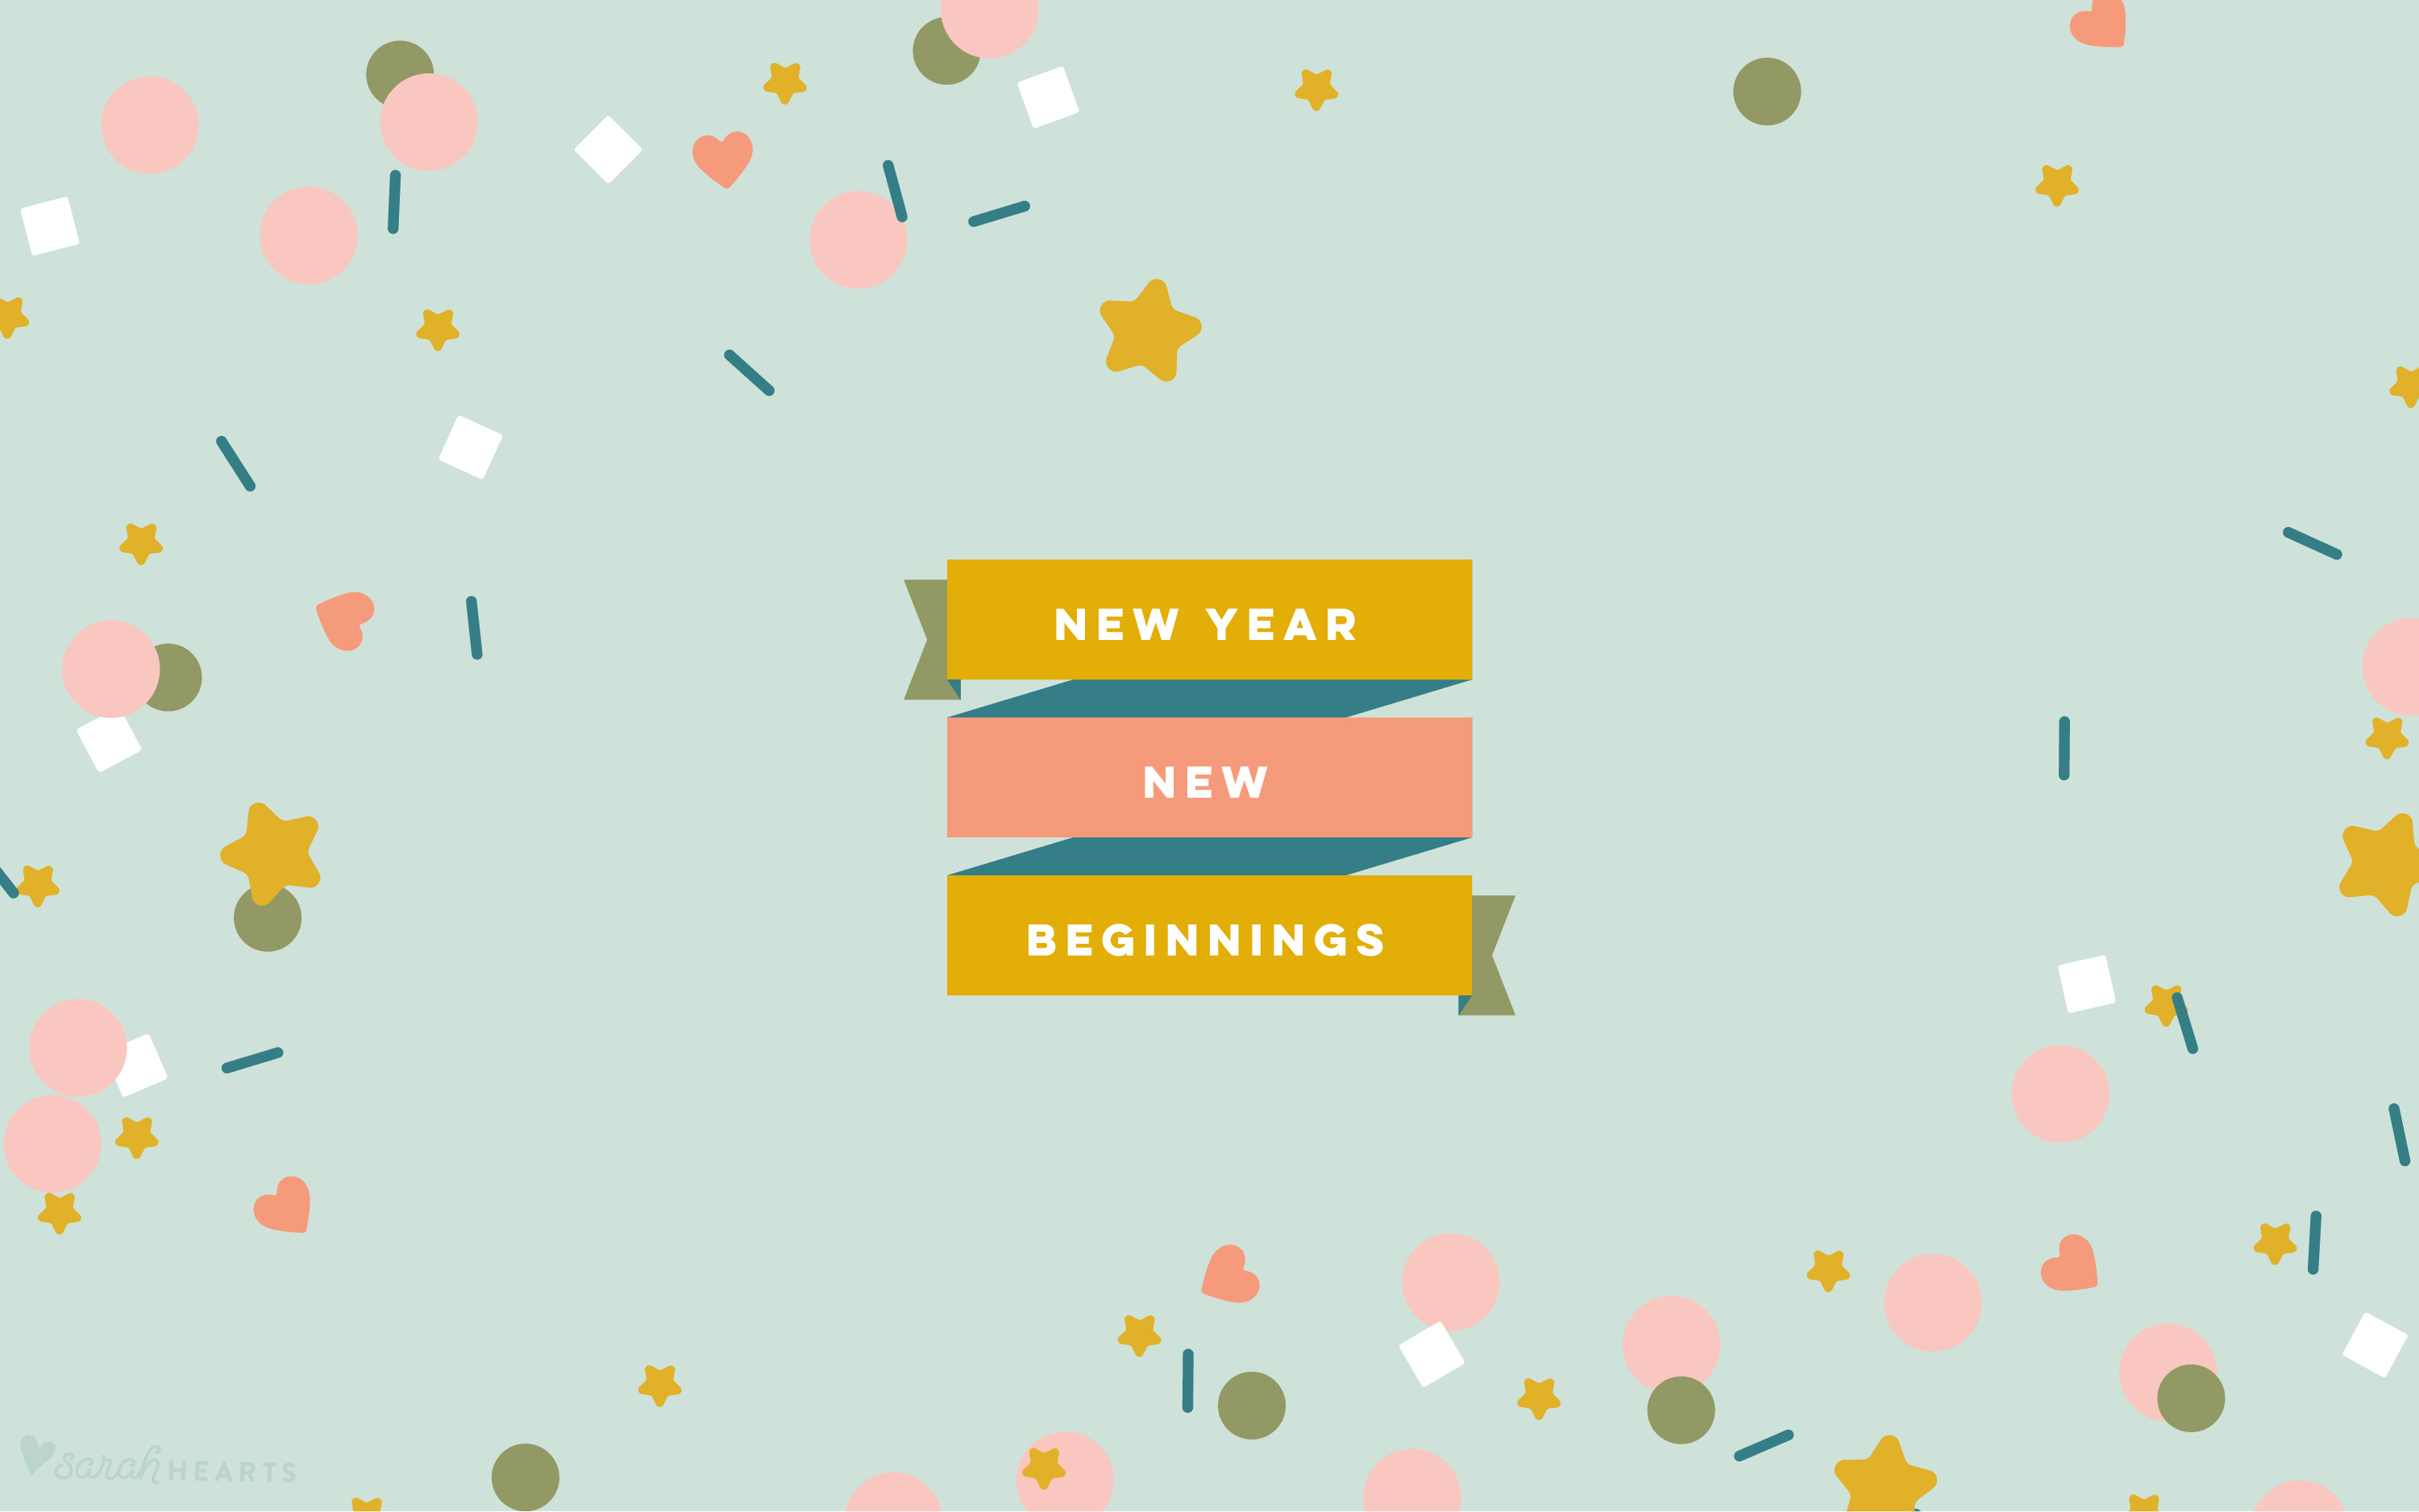 Desktop Wallpaper Quotes Pinterest January 2019 Confetti Calendar Wallpaper Sarah Hearts